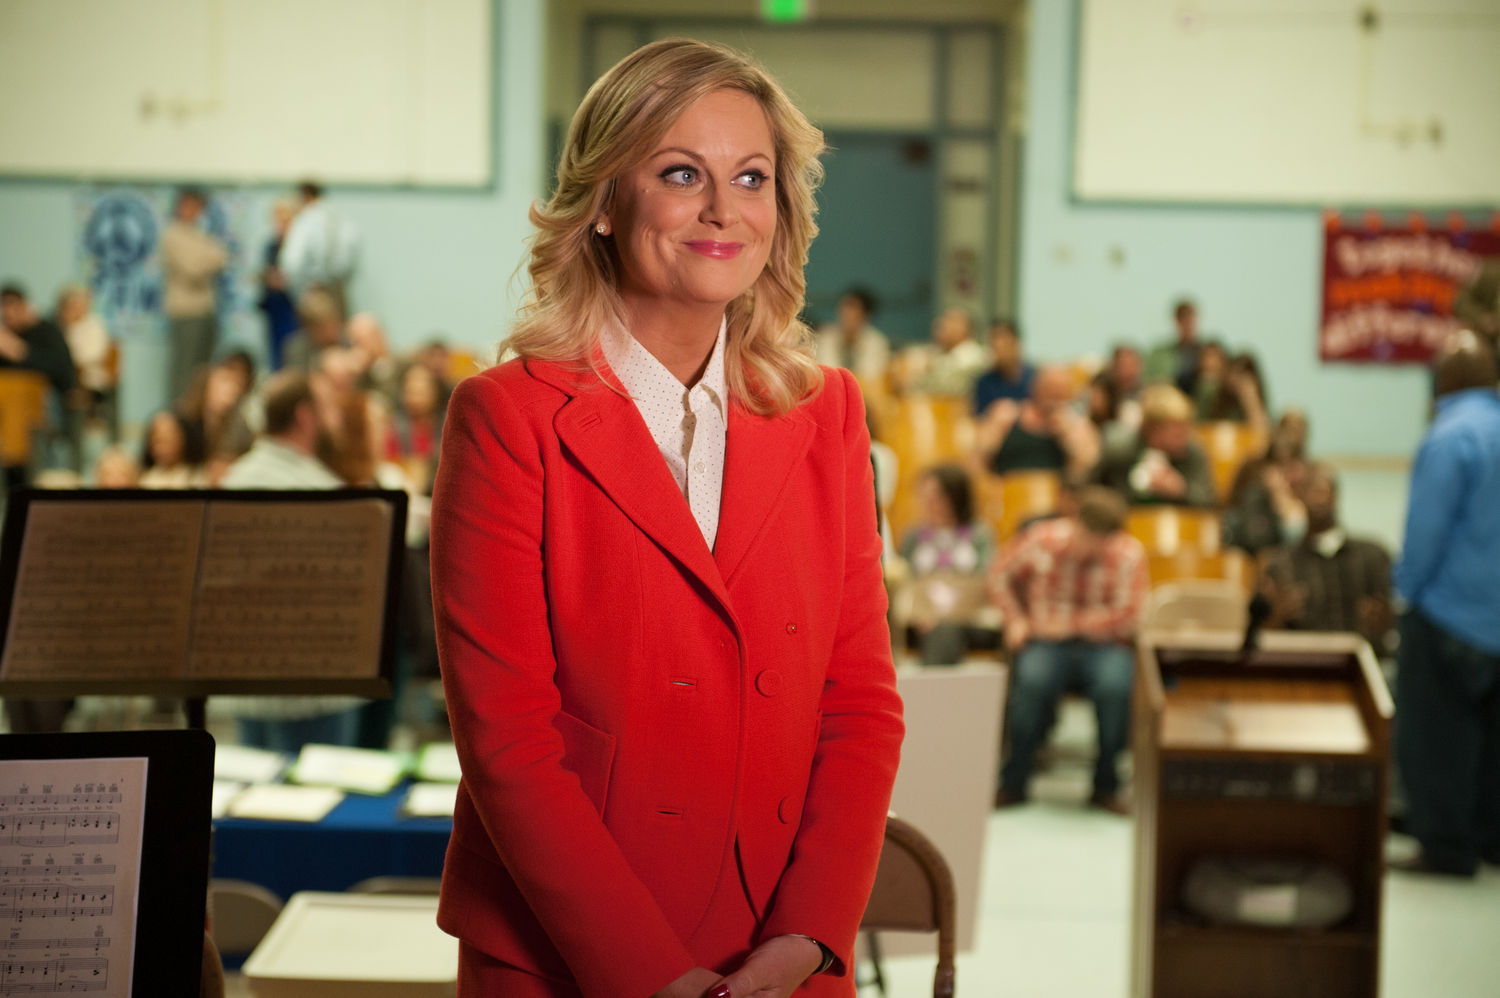 Friendly reminder that in an alternate universe Leslie Knope is PROBABLY president